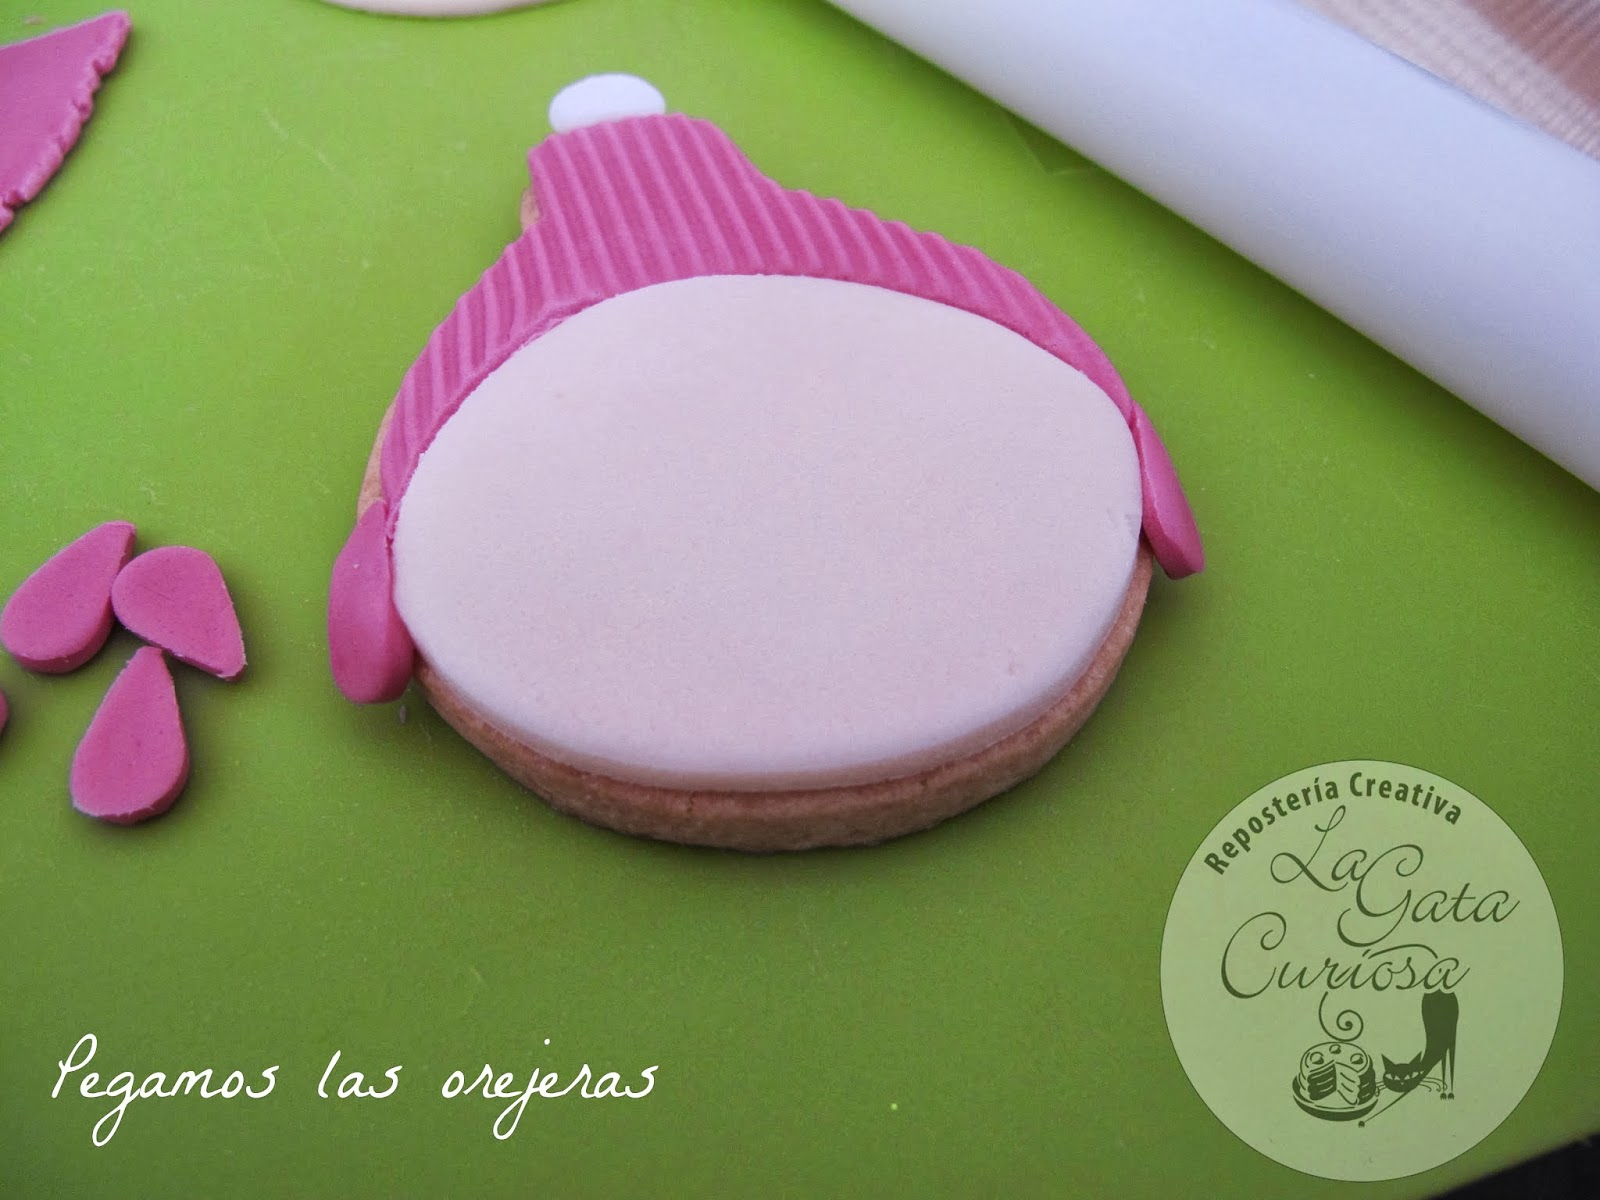 Tutorial De Galletas Decoradas Con Glasa La Gata Curiosa: Tutorial Galleta Fondant De NiÑo NavideÑo